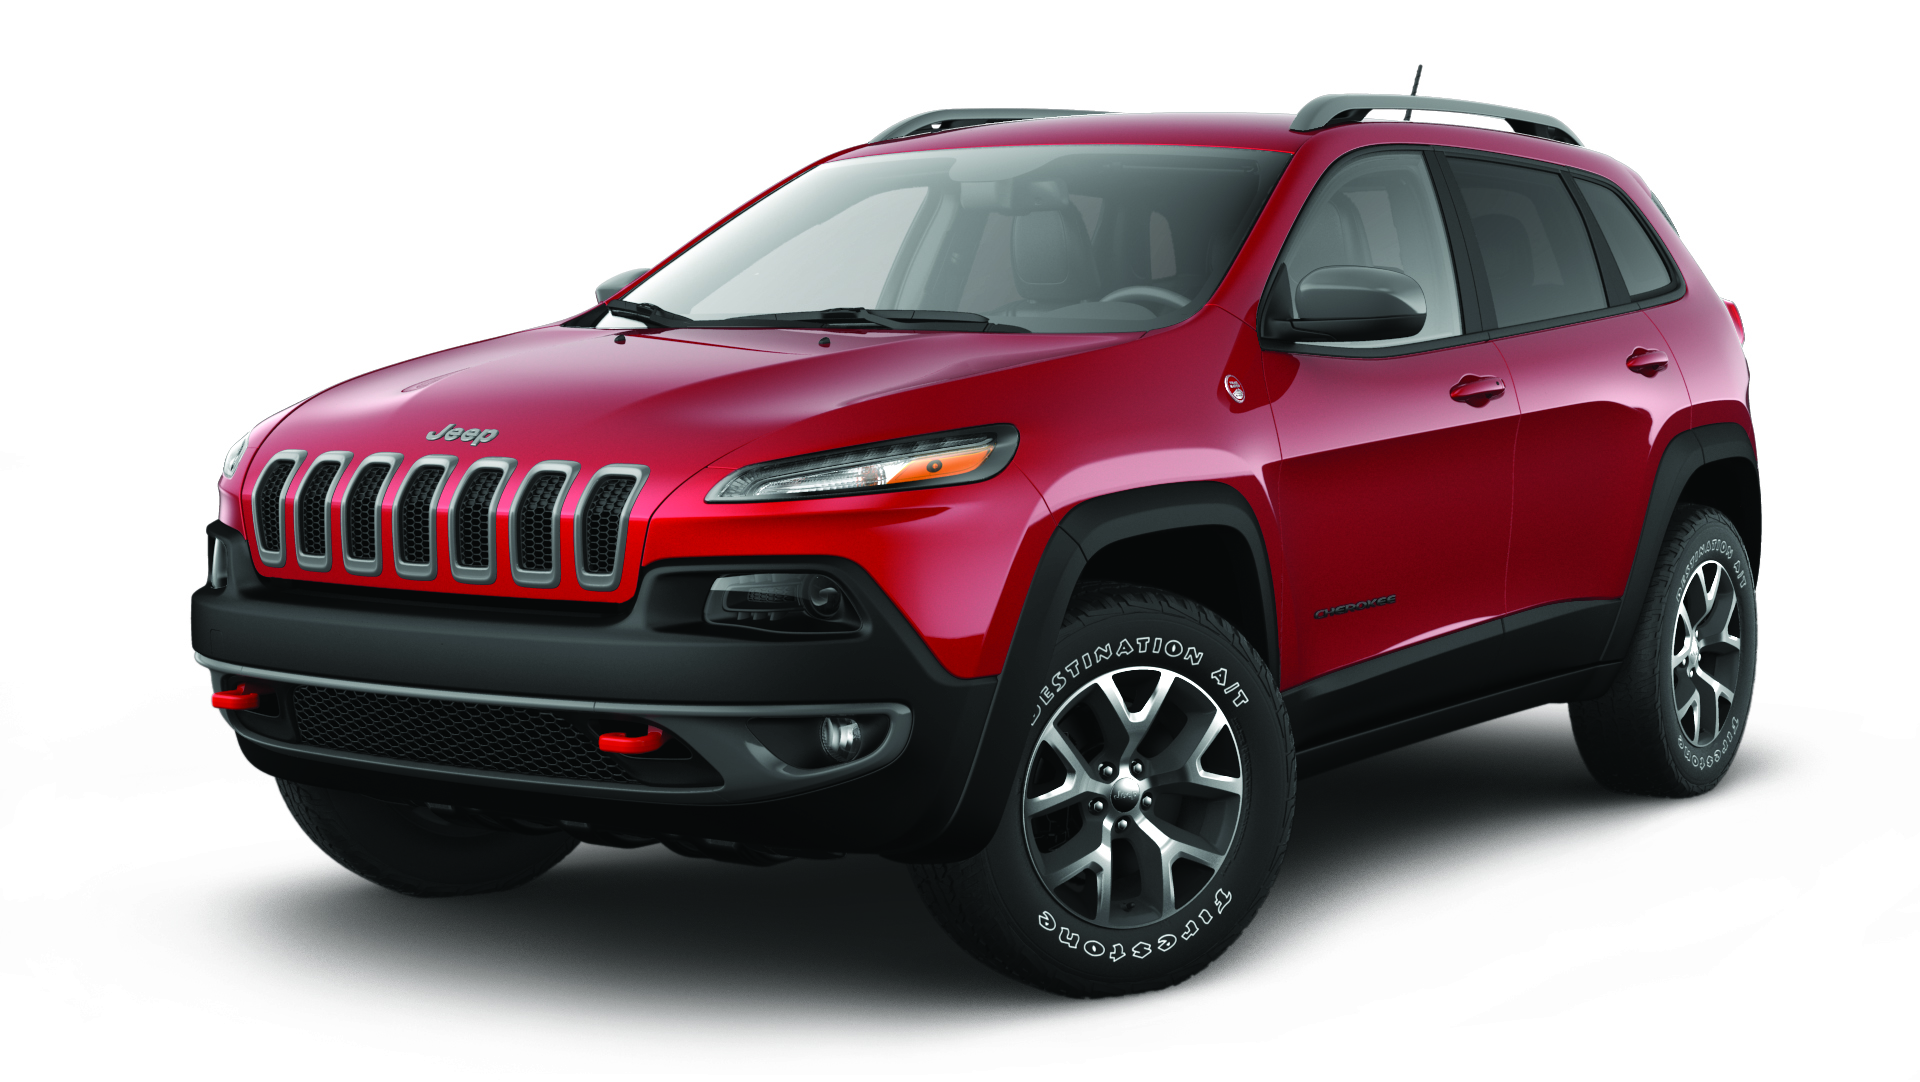 Hollywood Chyrsler Jeep 2016 Cherokee Overland